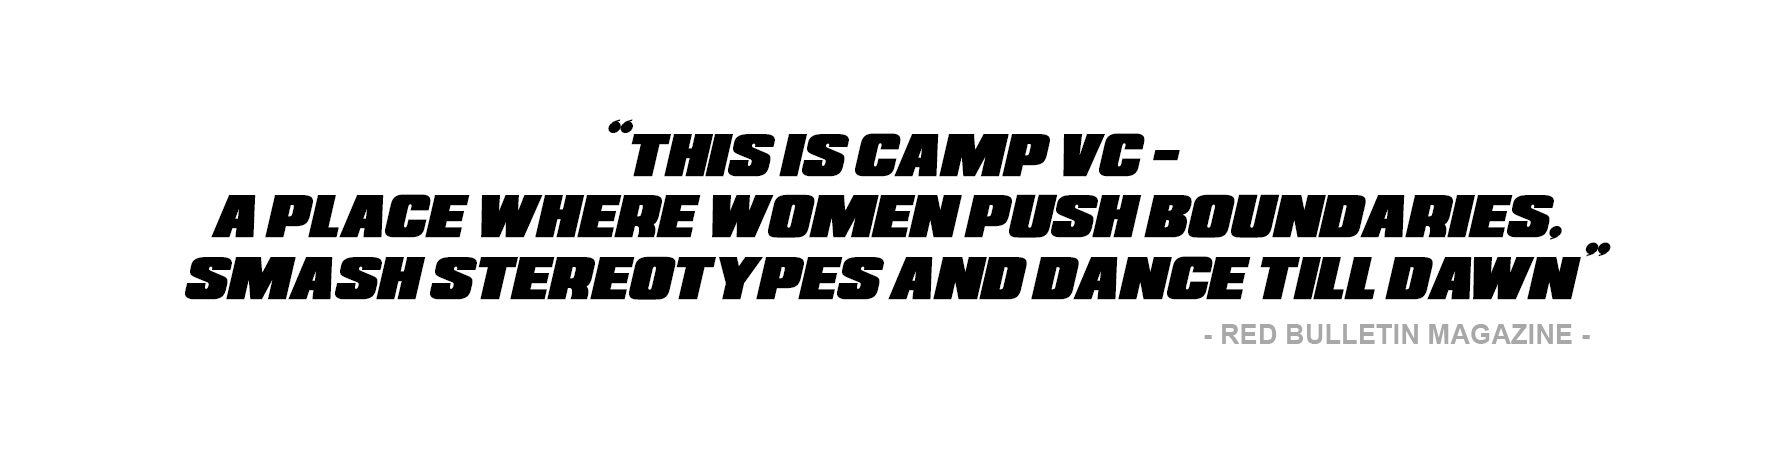 CAMP VC RED BULLETIN .jpg